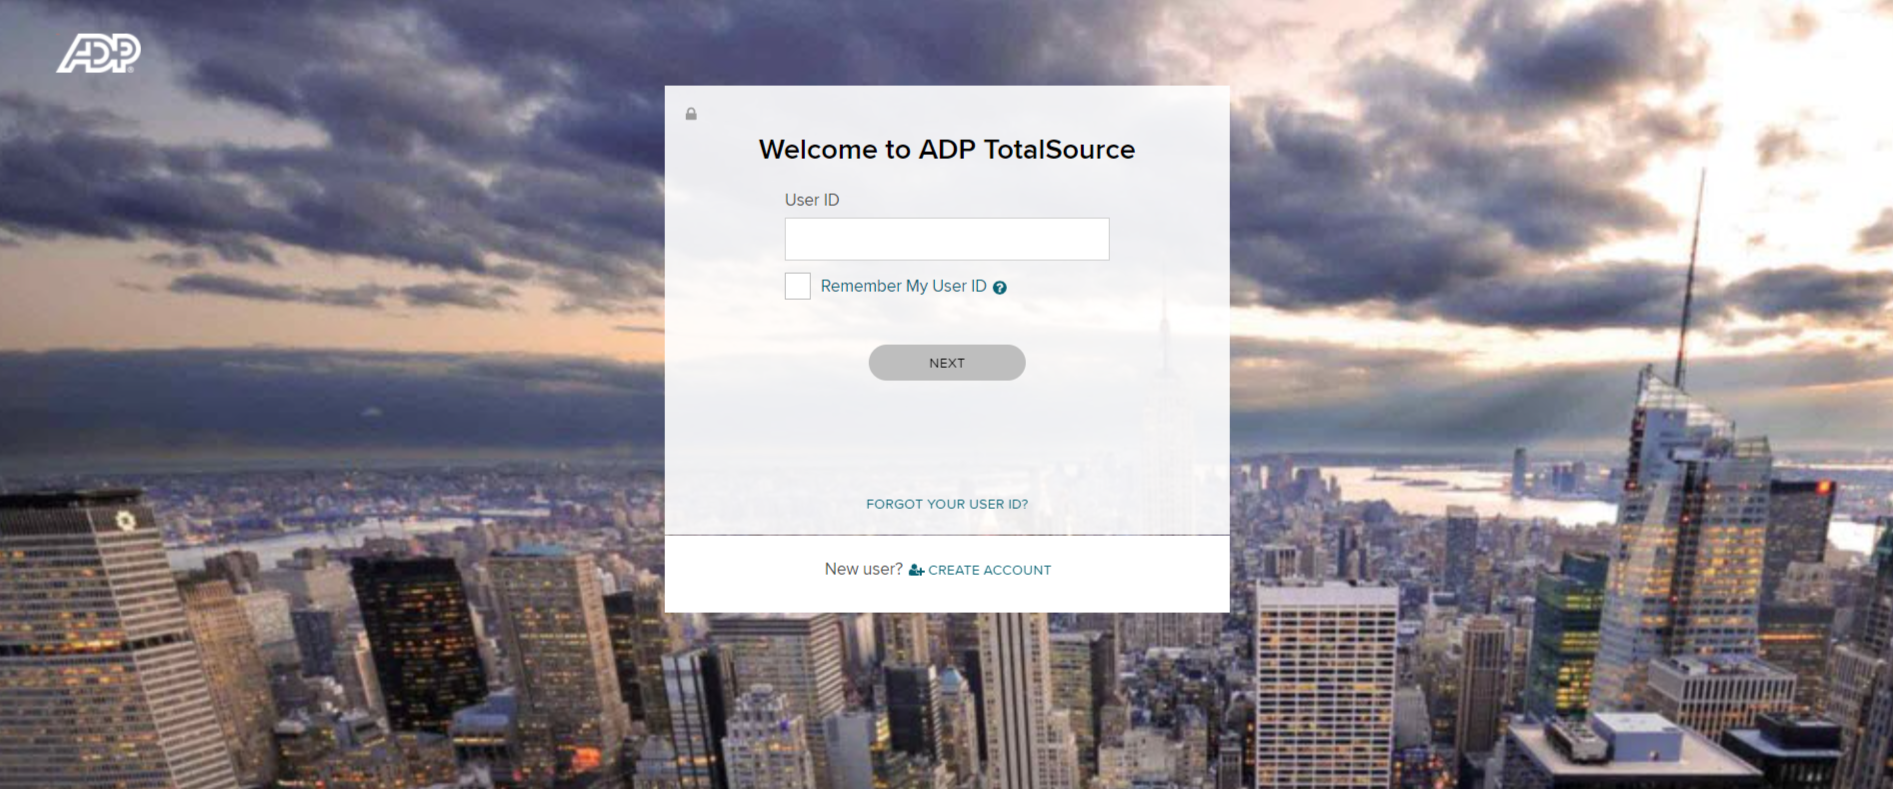 adp totalsource employee portal